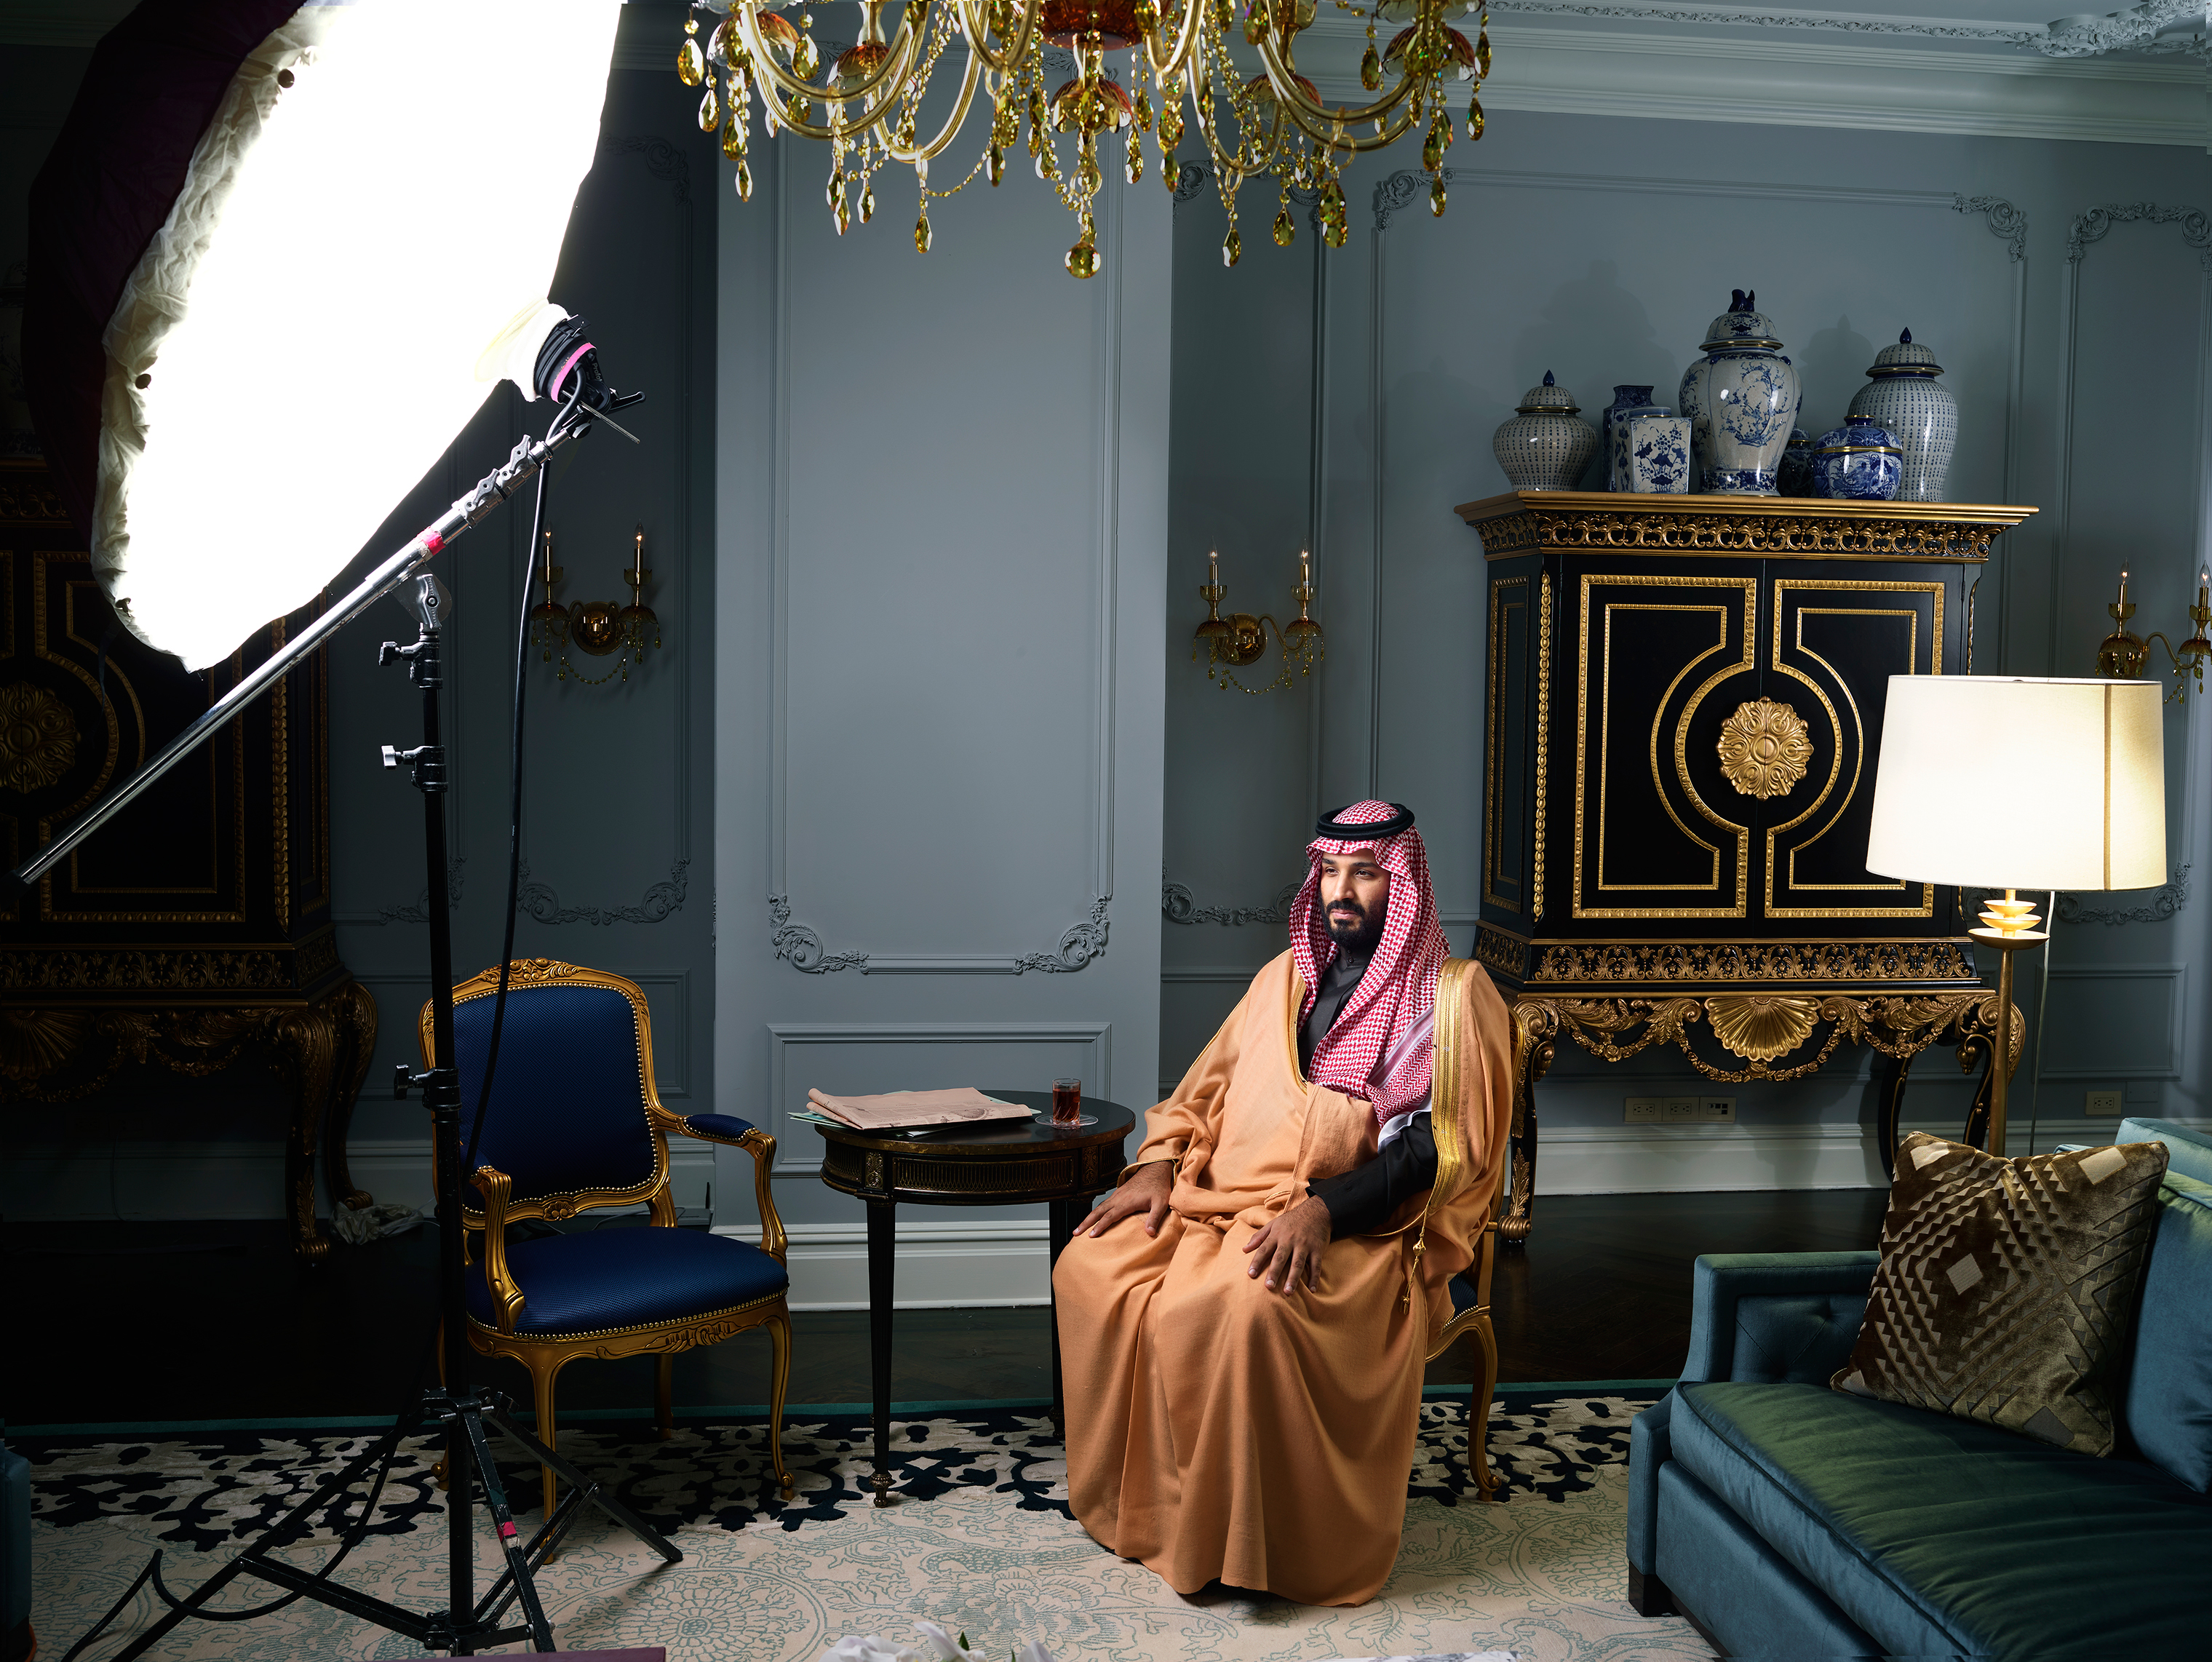 Crown Prince Mohammed bin Salman photographed at New York City's Plaza Hotel on March 29, 2018.